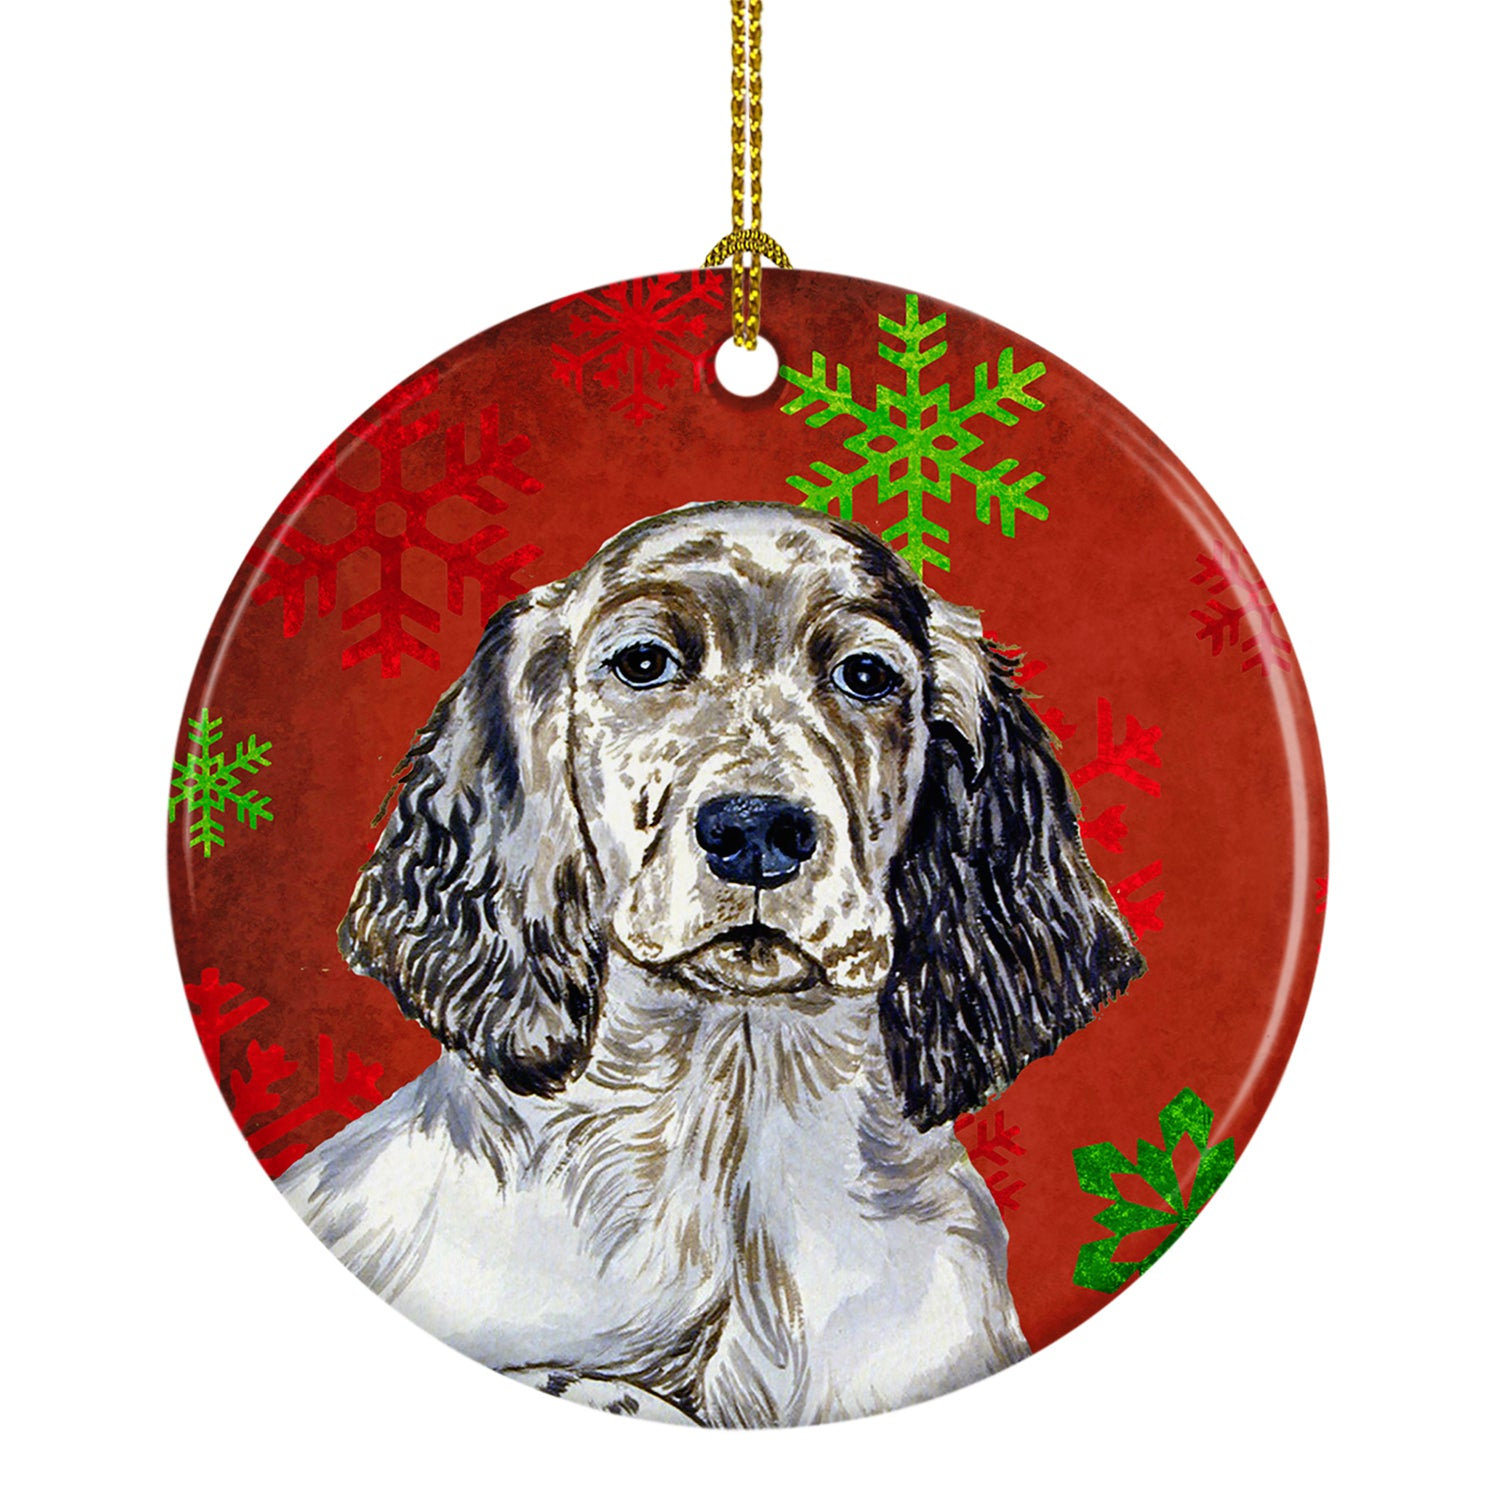 English Setter Red Snowflake Holiday Christmas Ceramic Ornament LH9322 by Caroline's Treasures